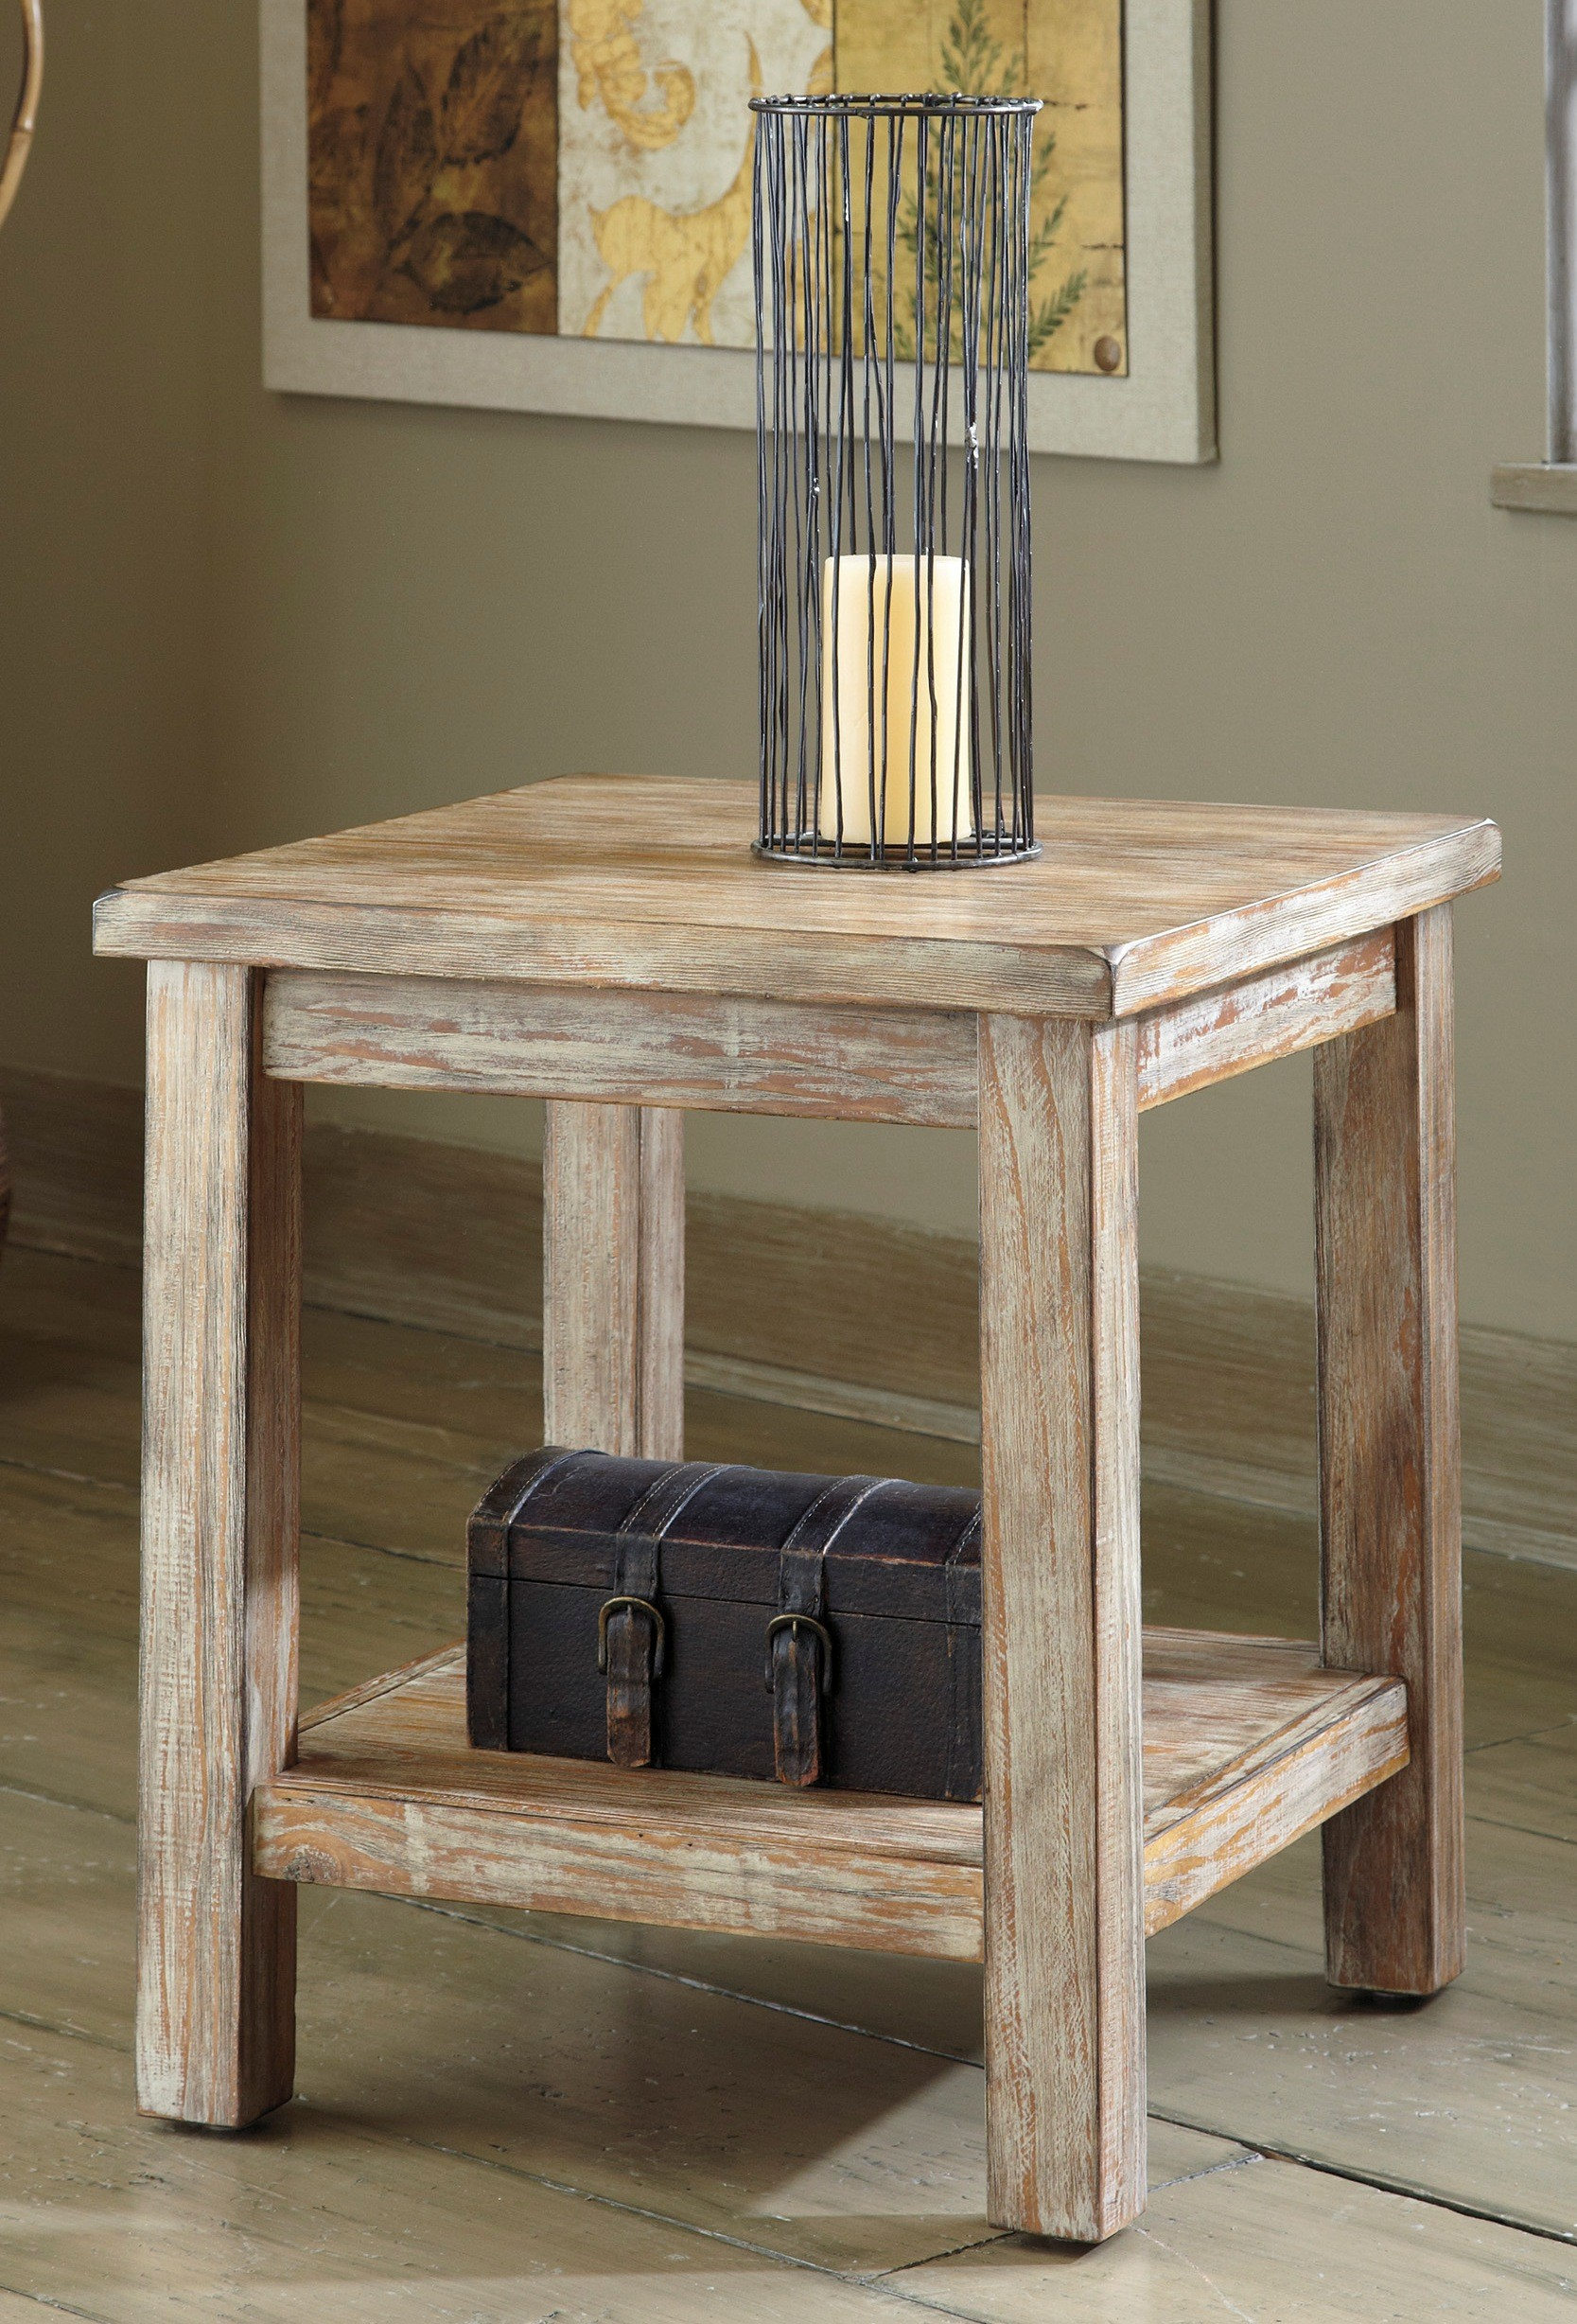 trunk end table target probably terrific great white oak high tech light wood tables ashley furniture rustic accents chair side sofas for small rooms contemporary accent chairs